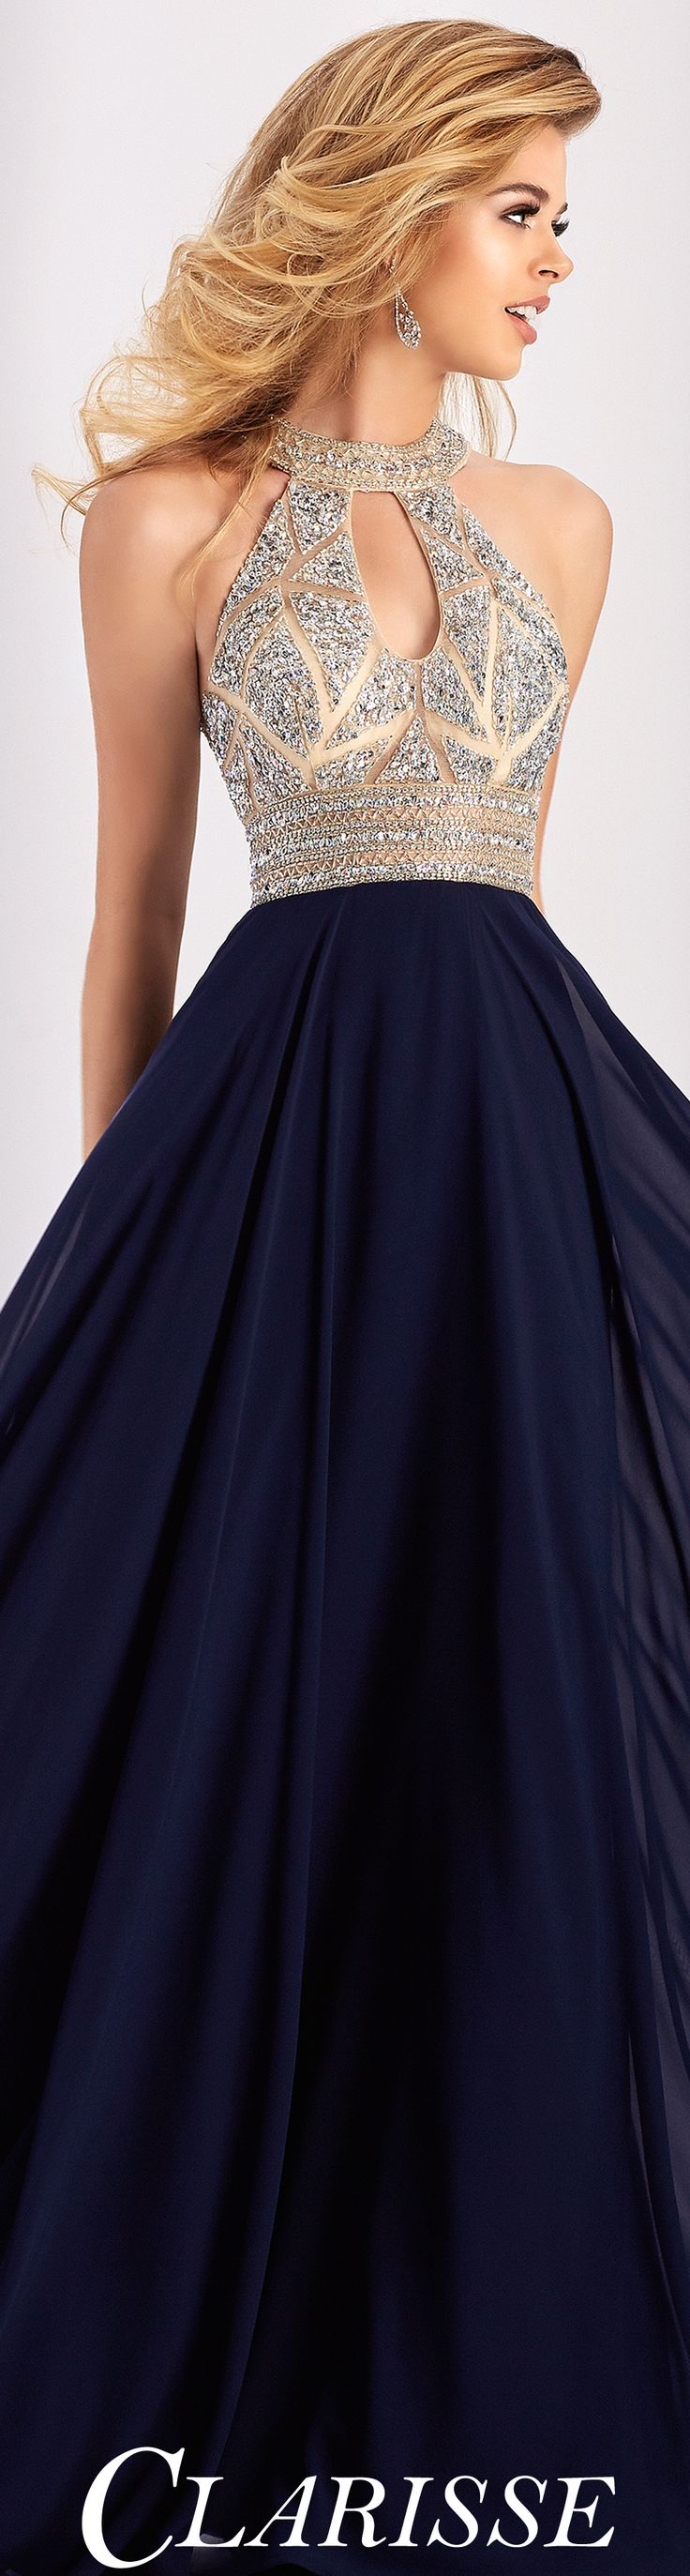 Hairstyles for 2018 prom one shoulder dress